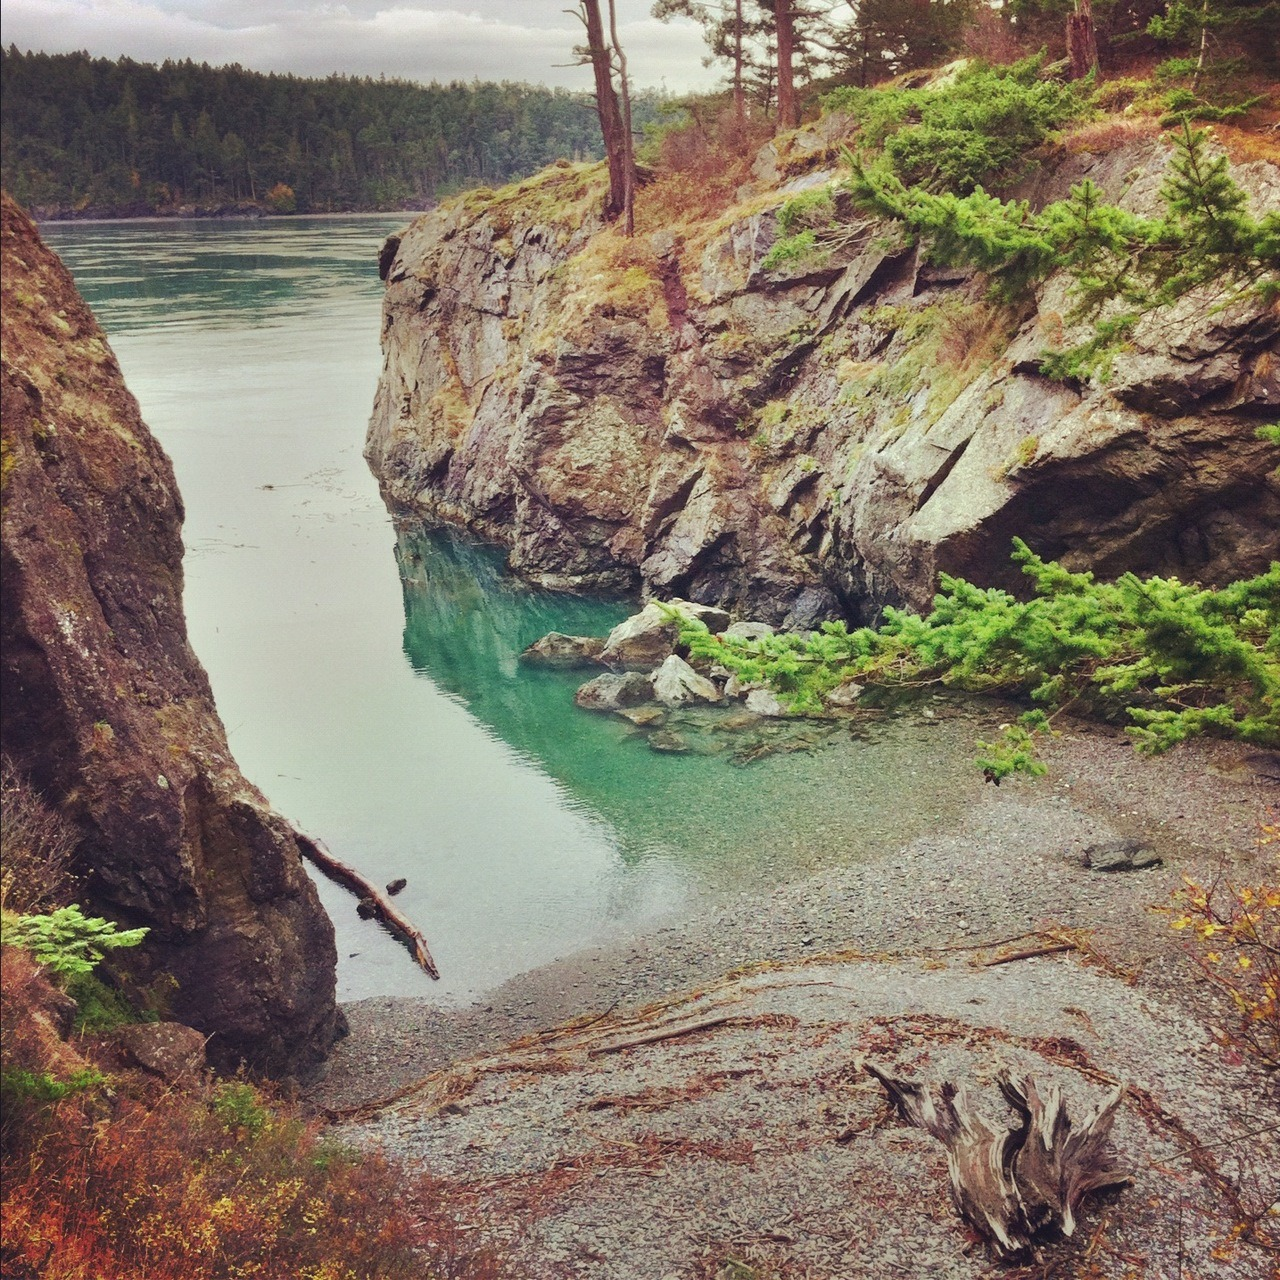 This little beach in my town Anacortes has a serious Moonrise Kingdom flavor… don't you think?